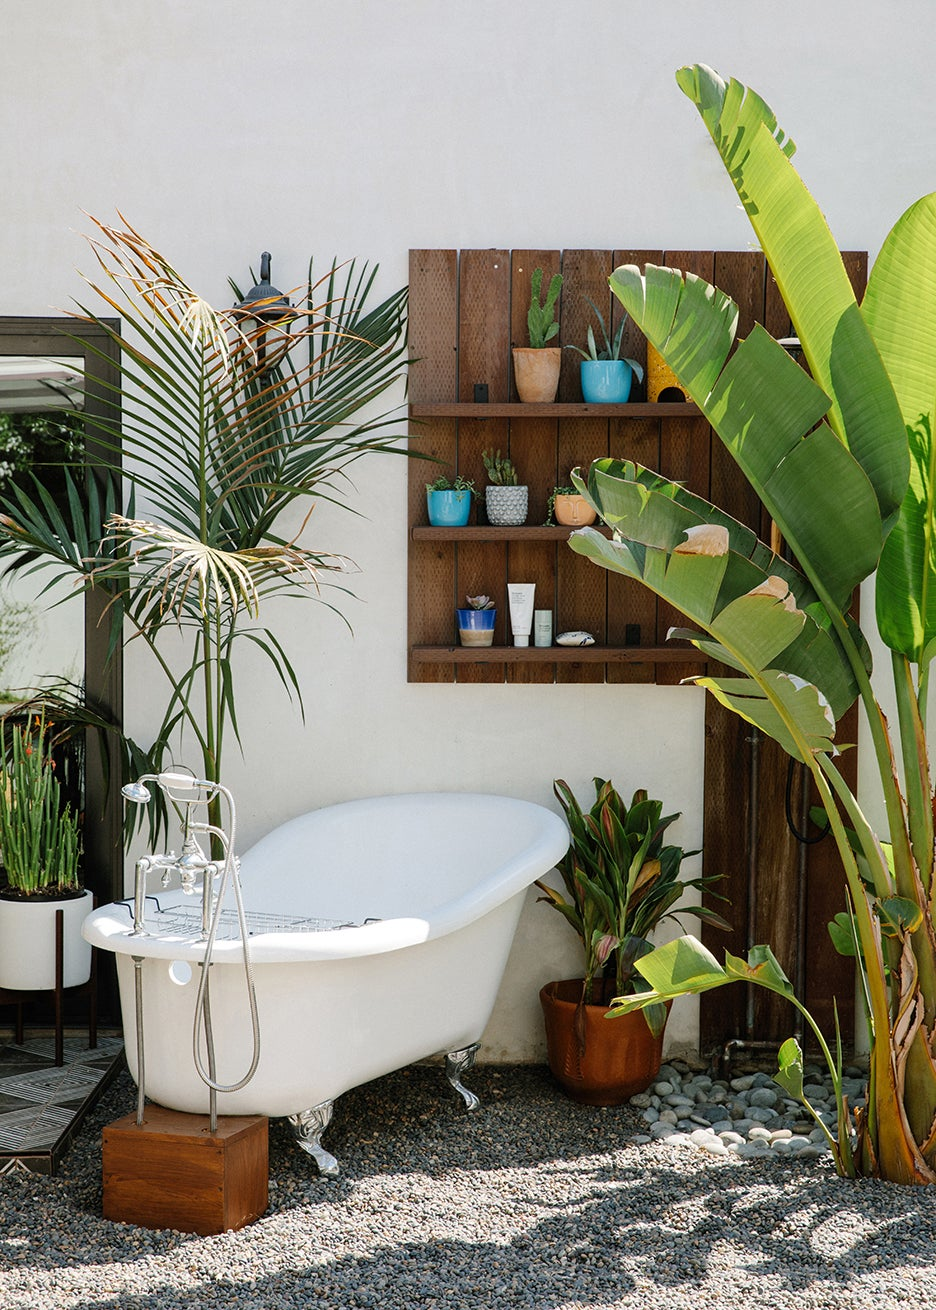 outdoor tub in front of bookcase with lots of pots